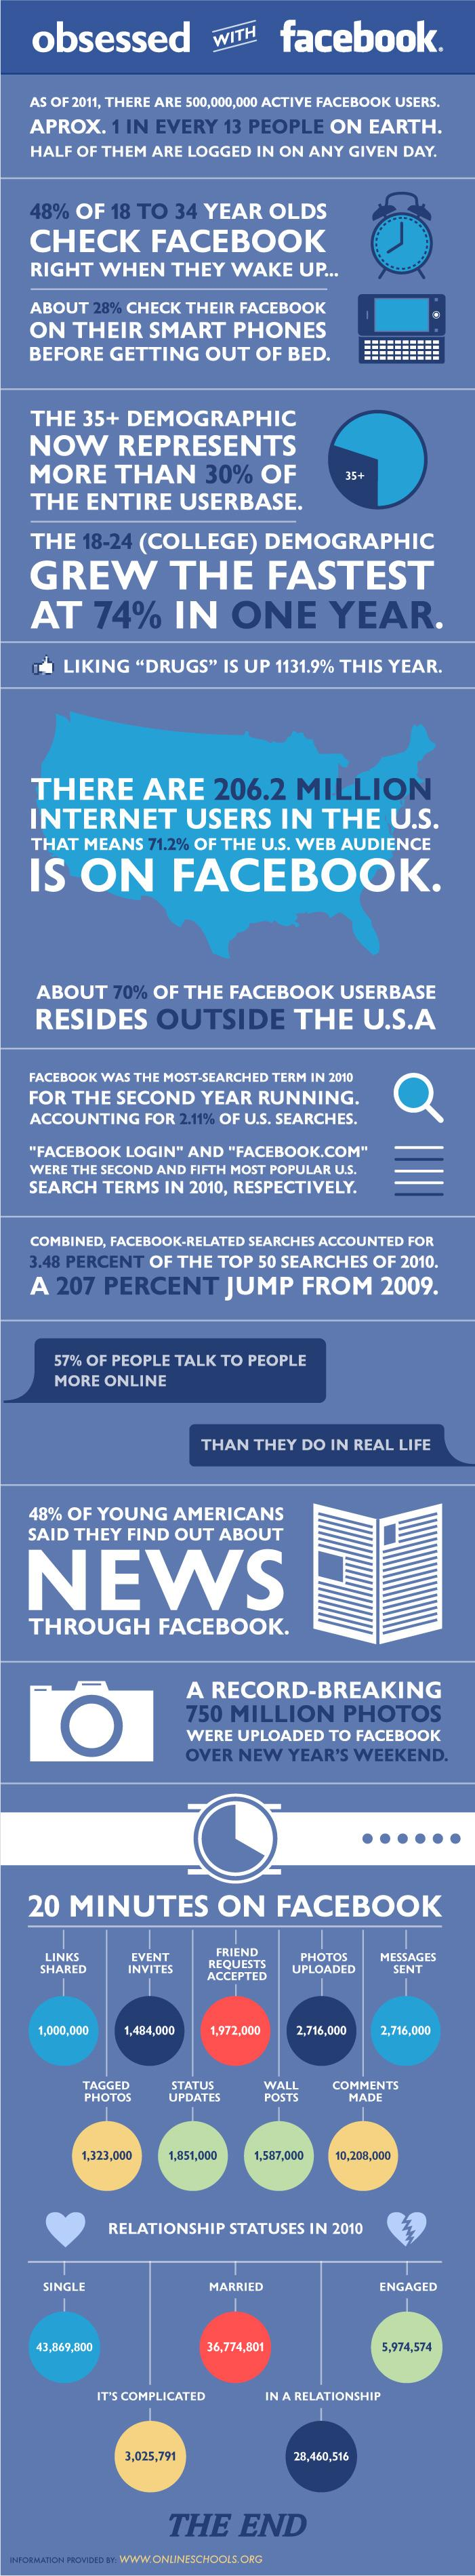 facebook-obsession